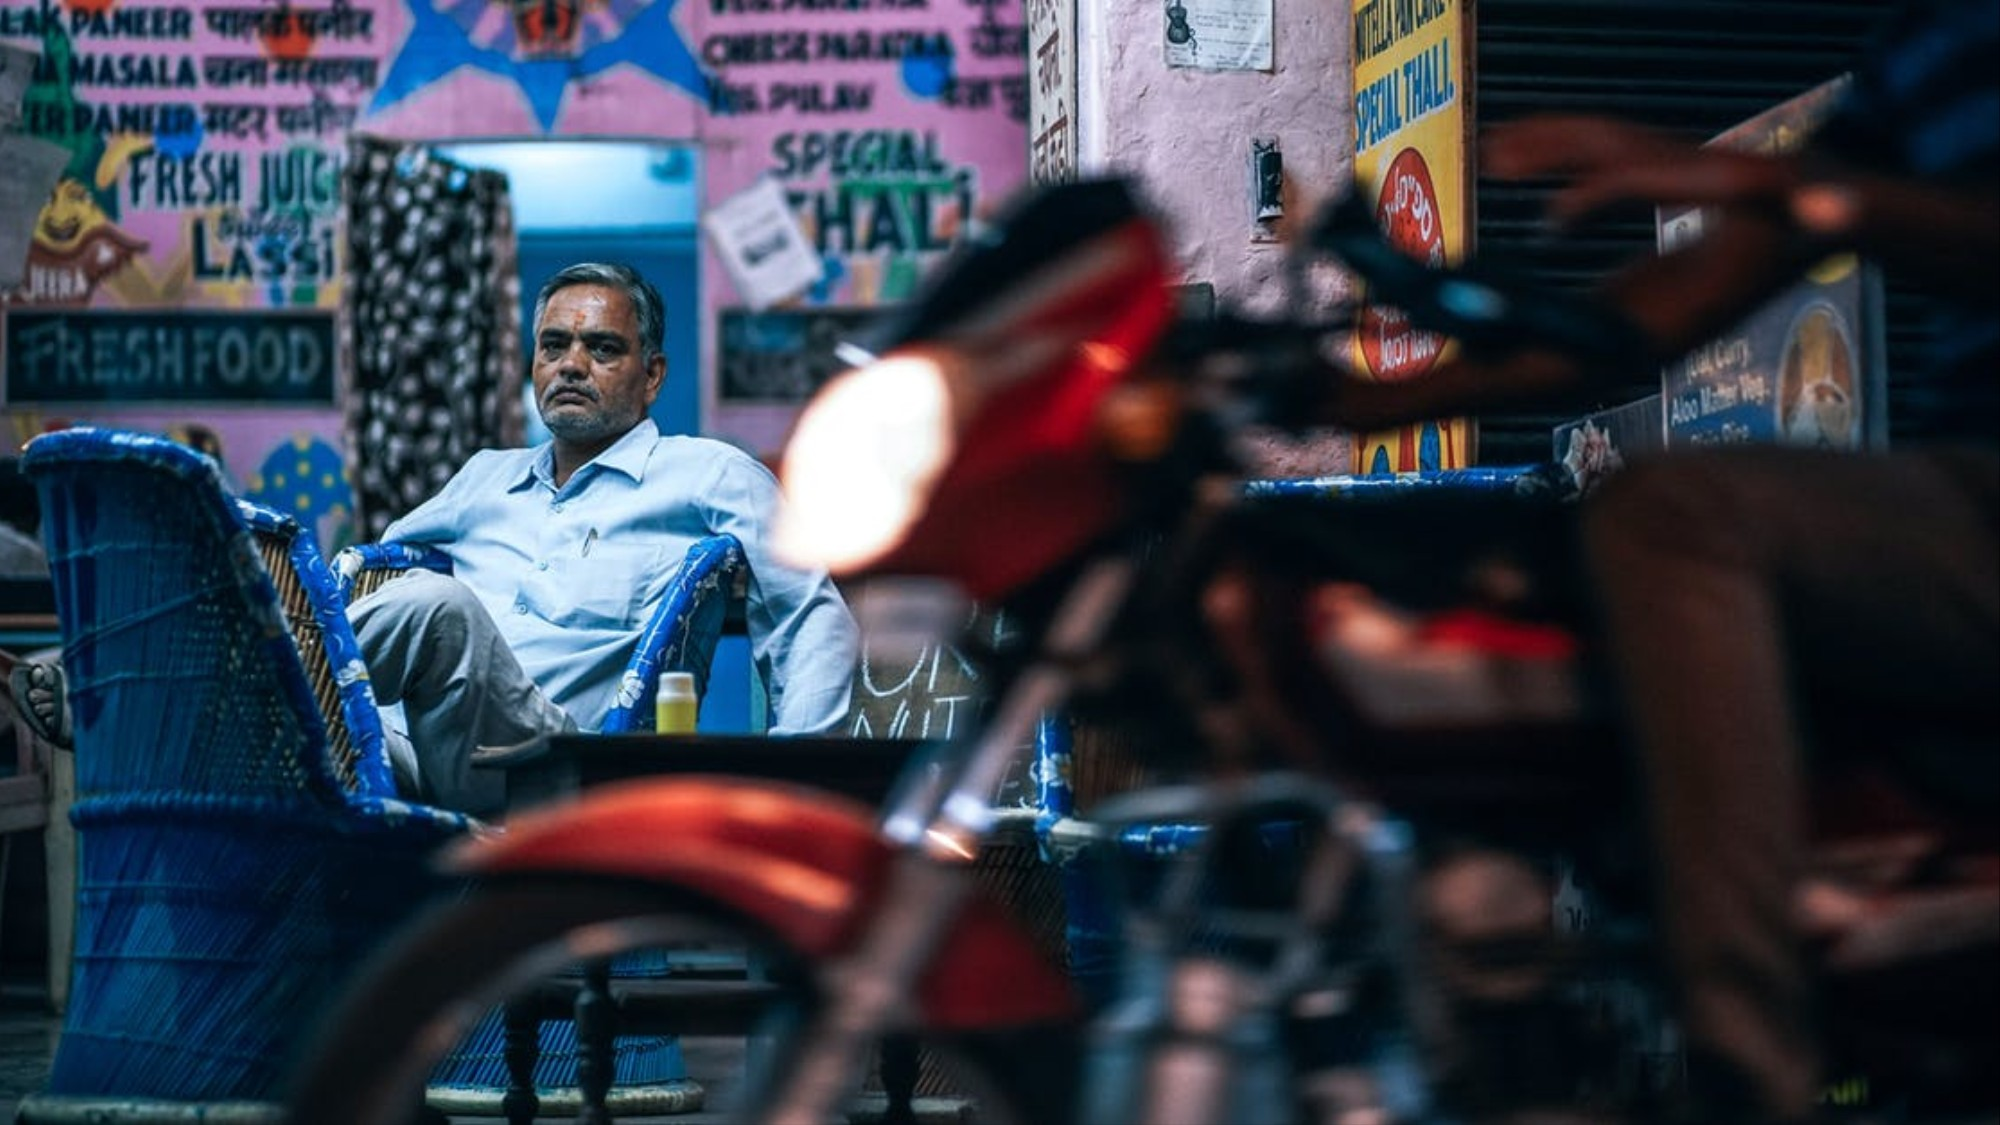 GB Road, Beyond the Stereotype of Delhi's Red Light District - VICE